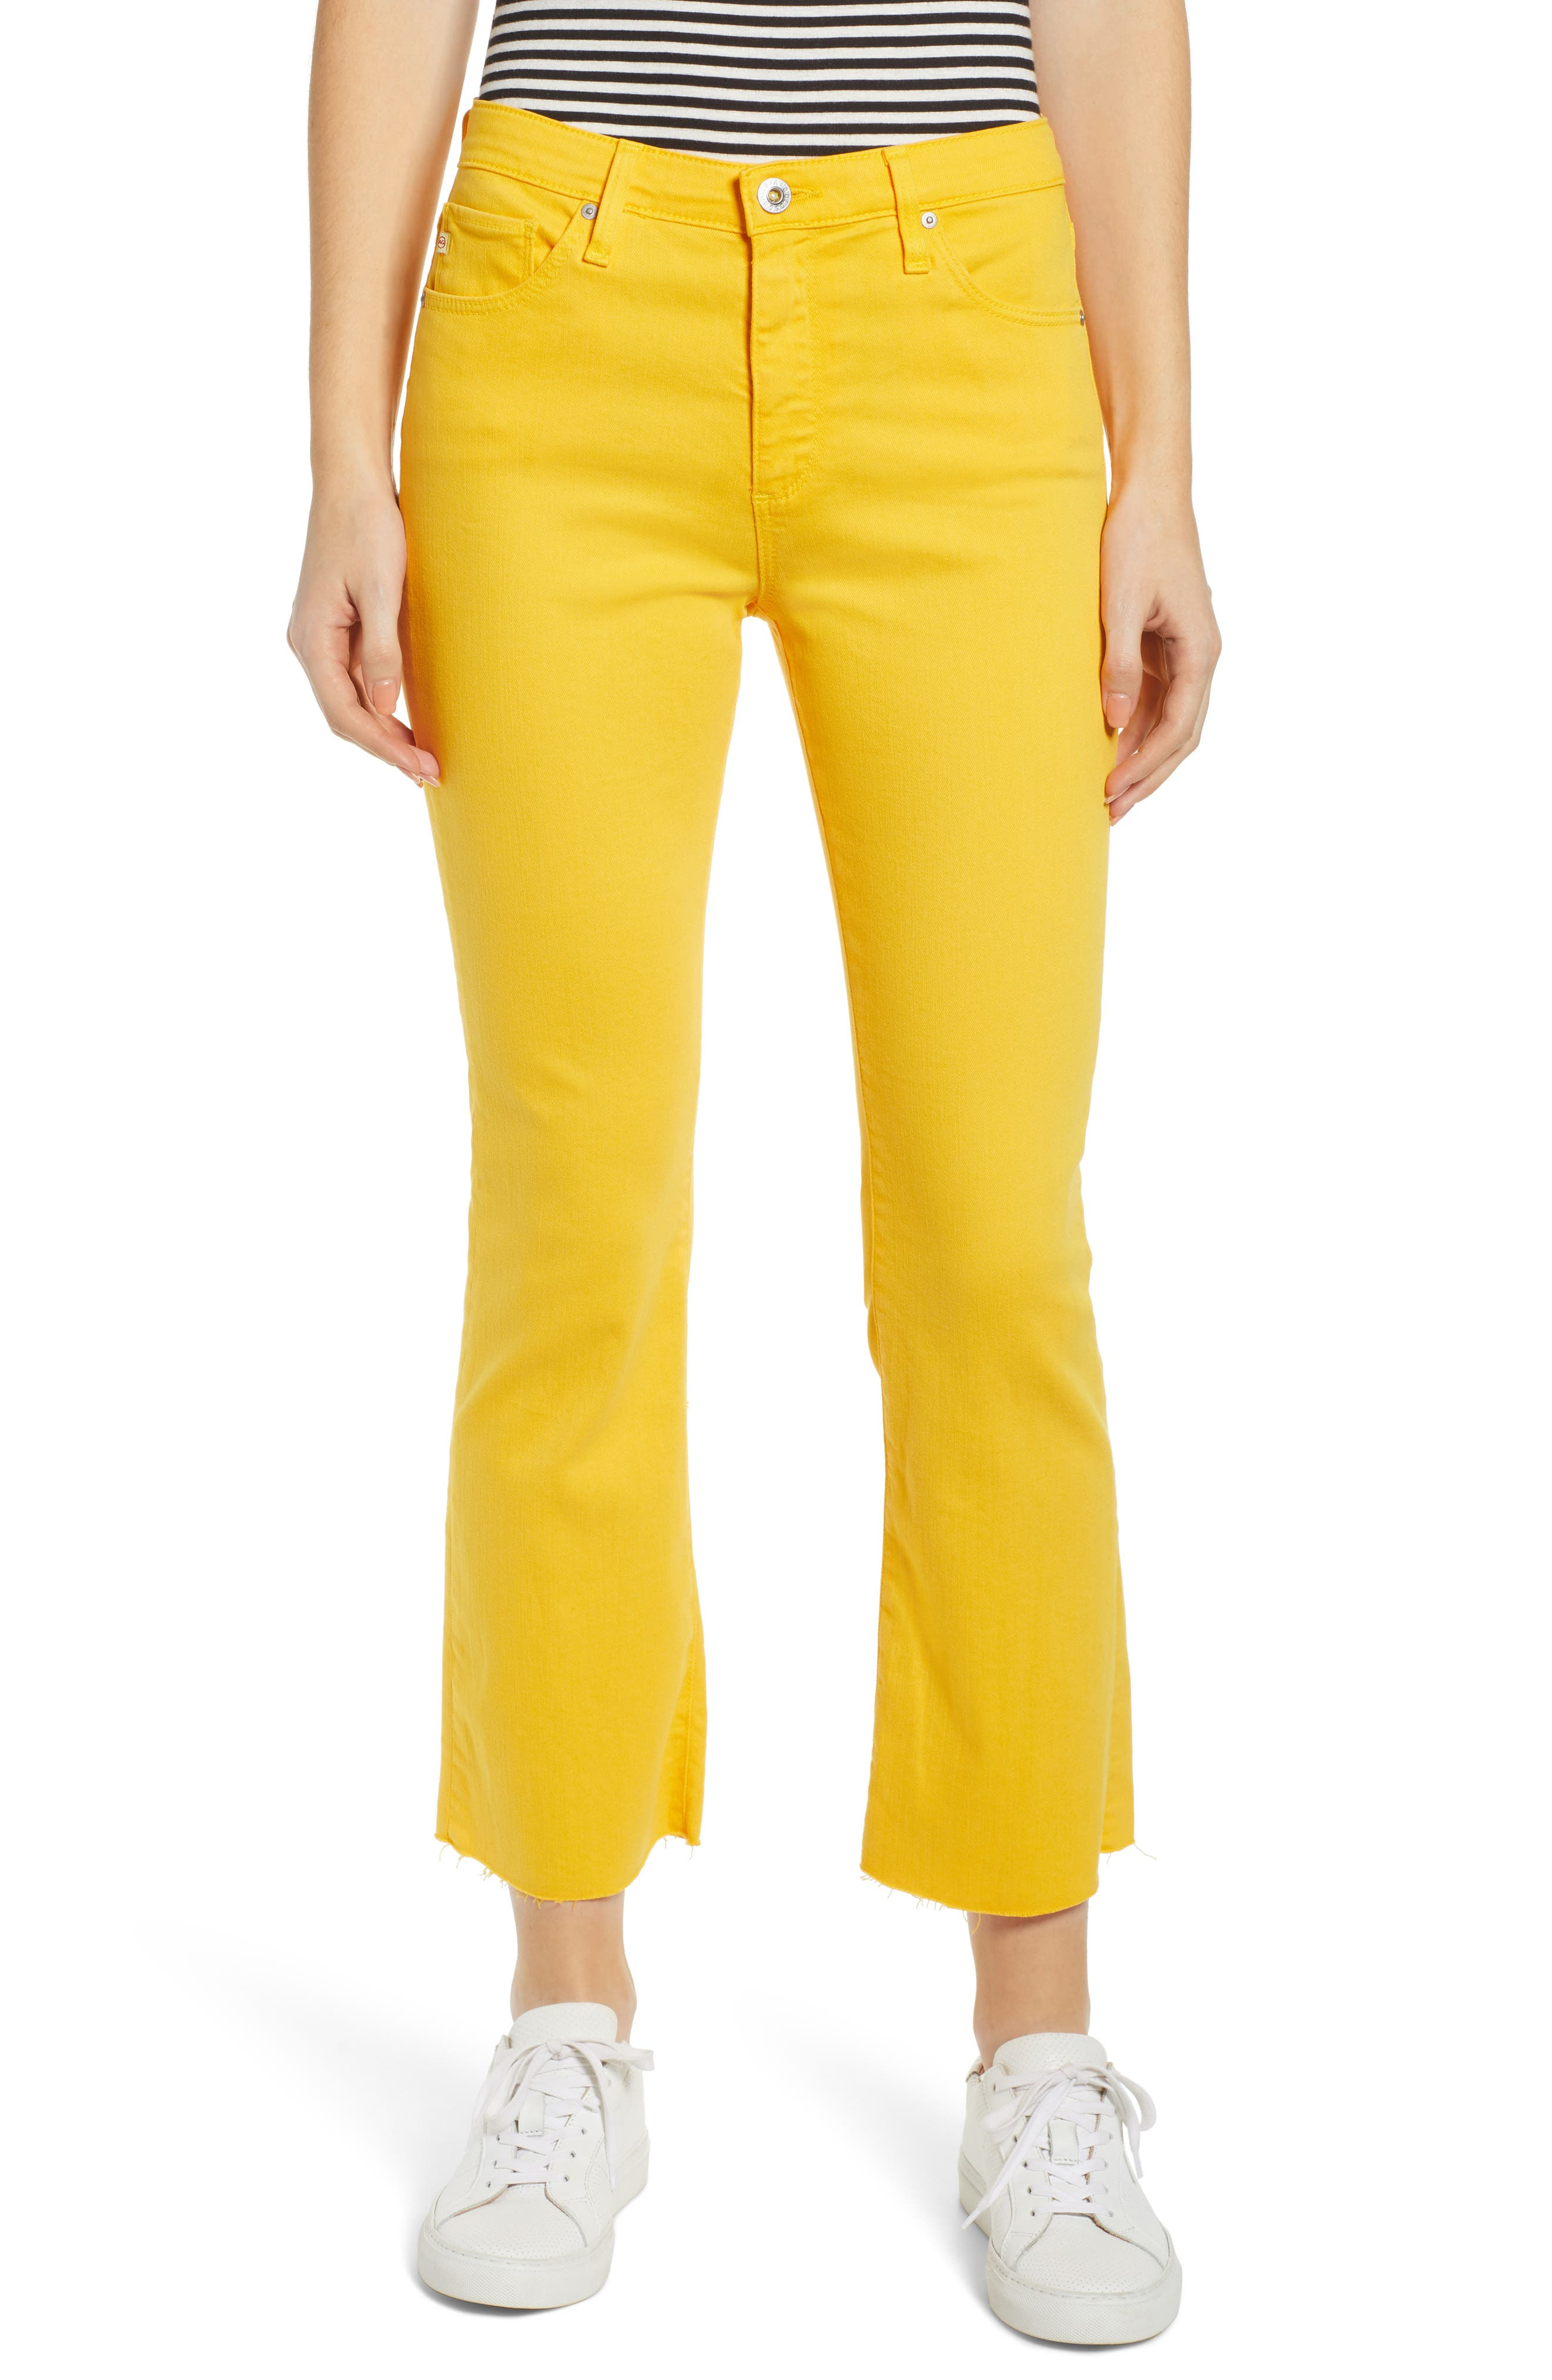 AG, Jodi High Waist Crop Jeans, Main thumbnail 1, color, GOLDEN OCHRE